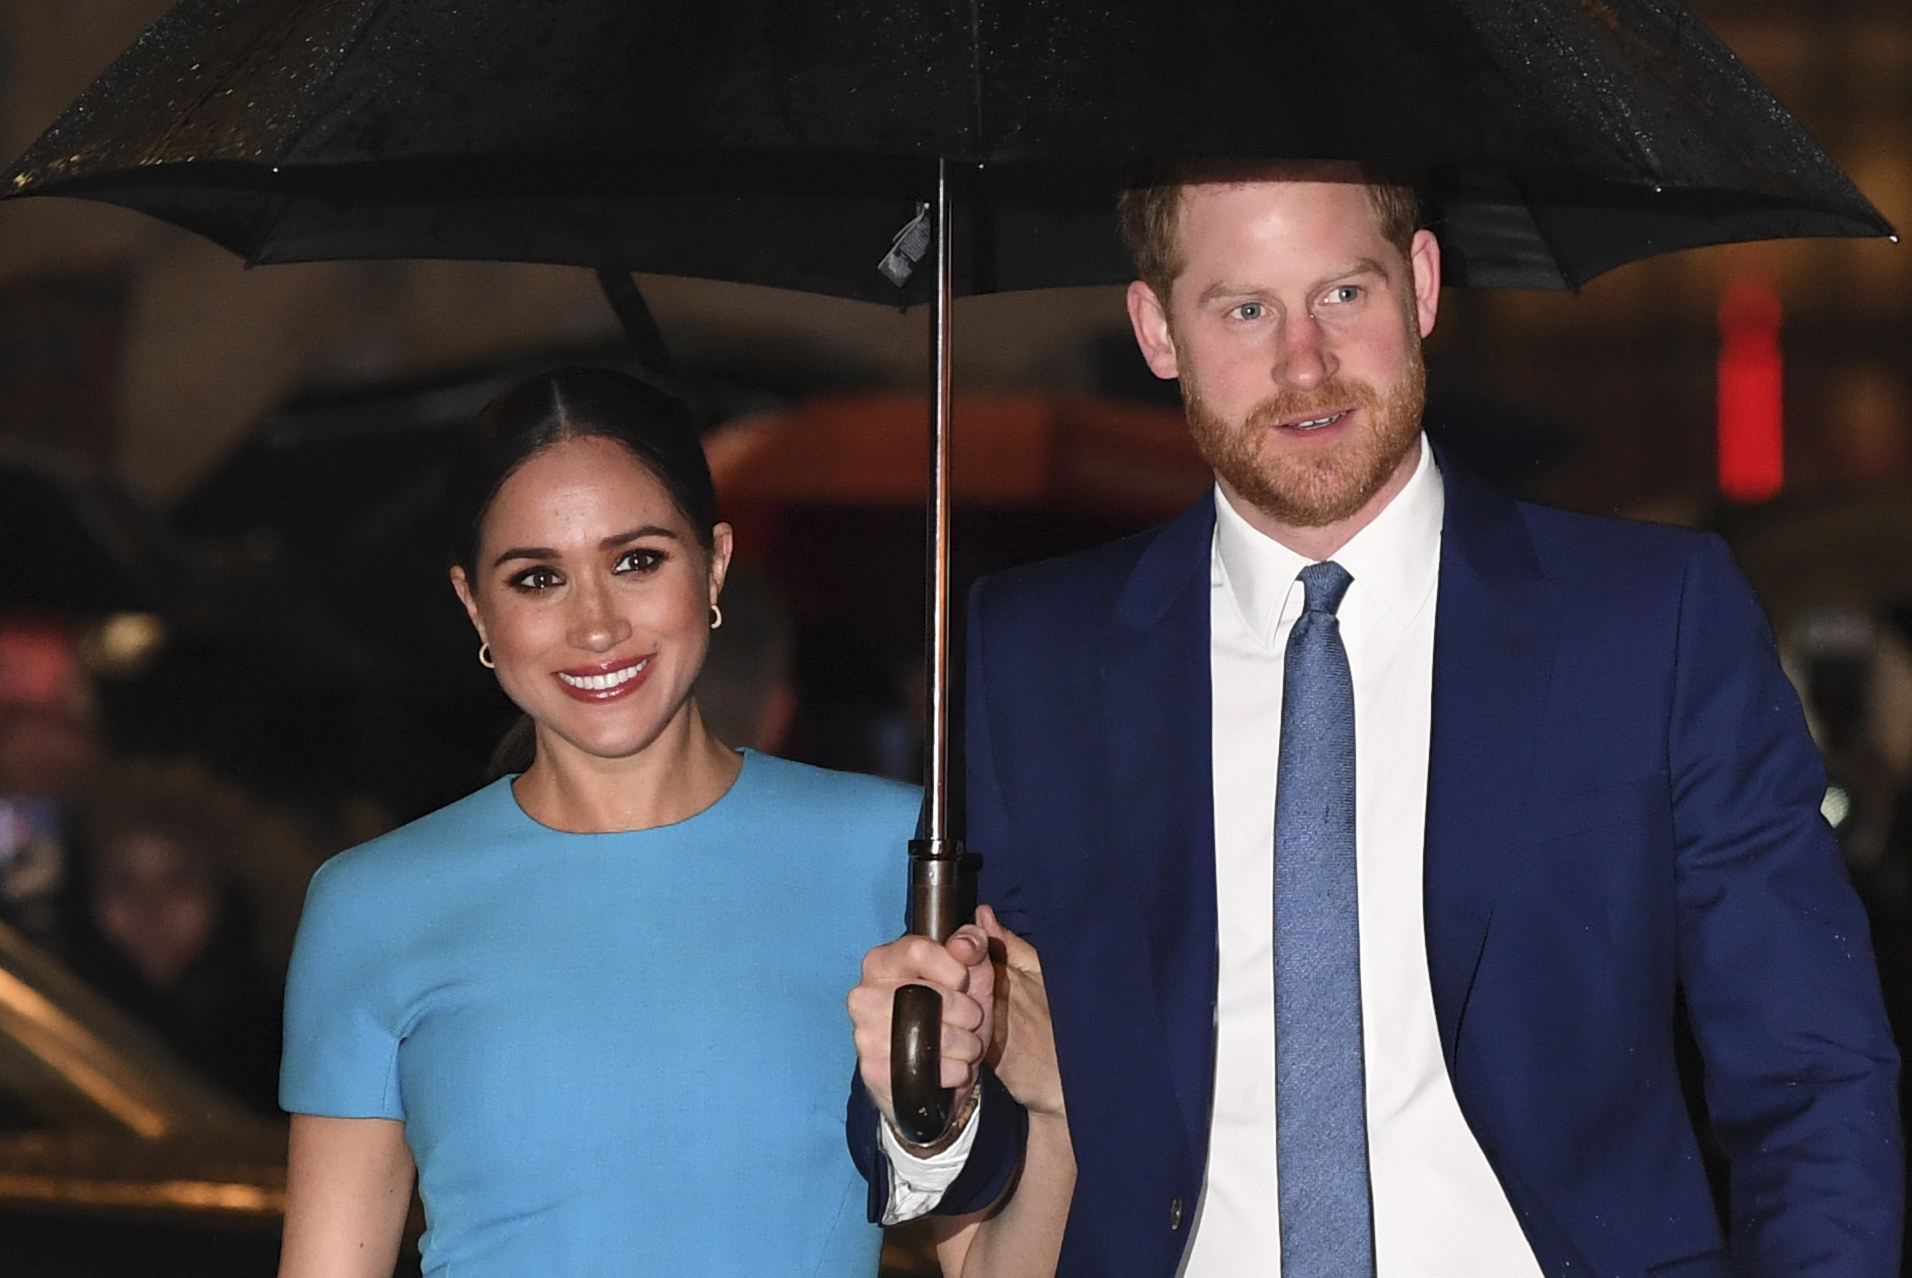 Harry and Meghan attend the Endeavour Fund Awards in London in 2020